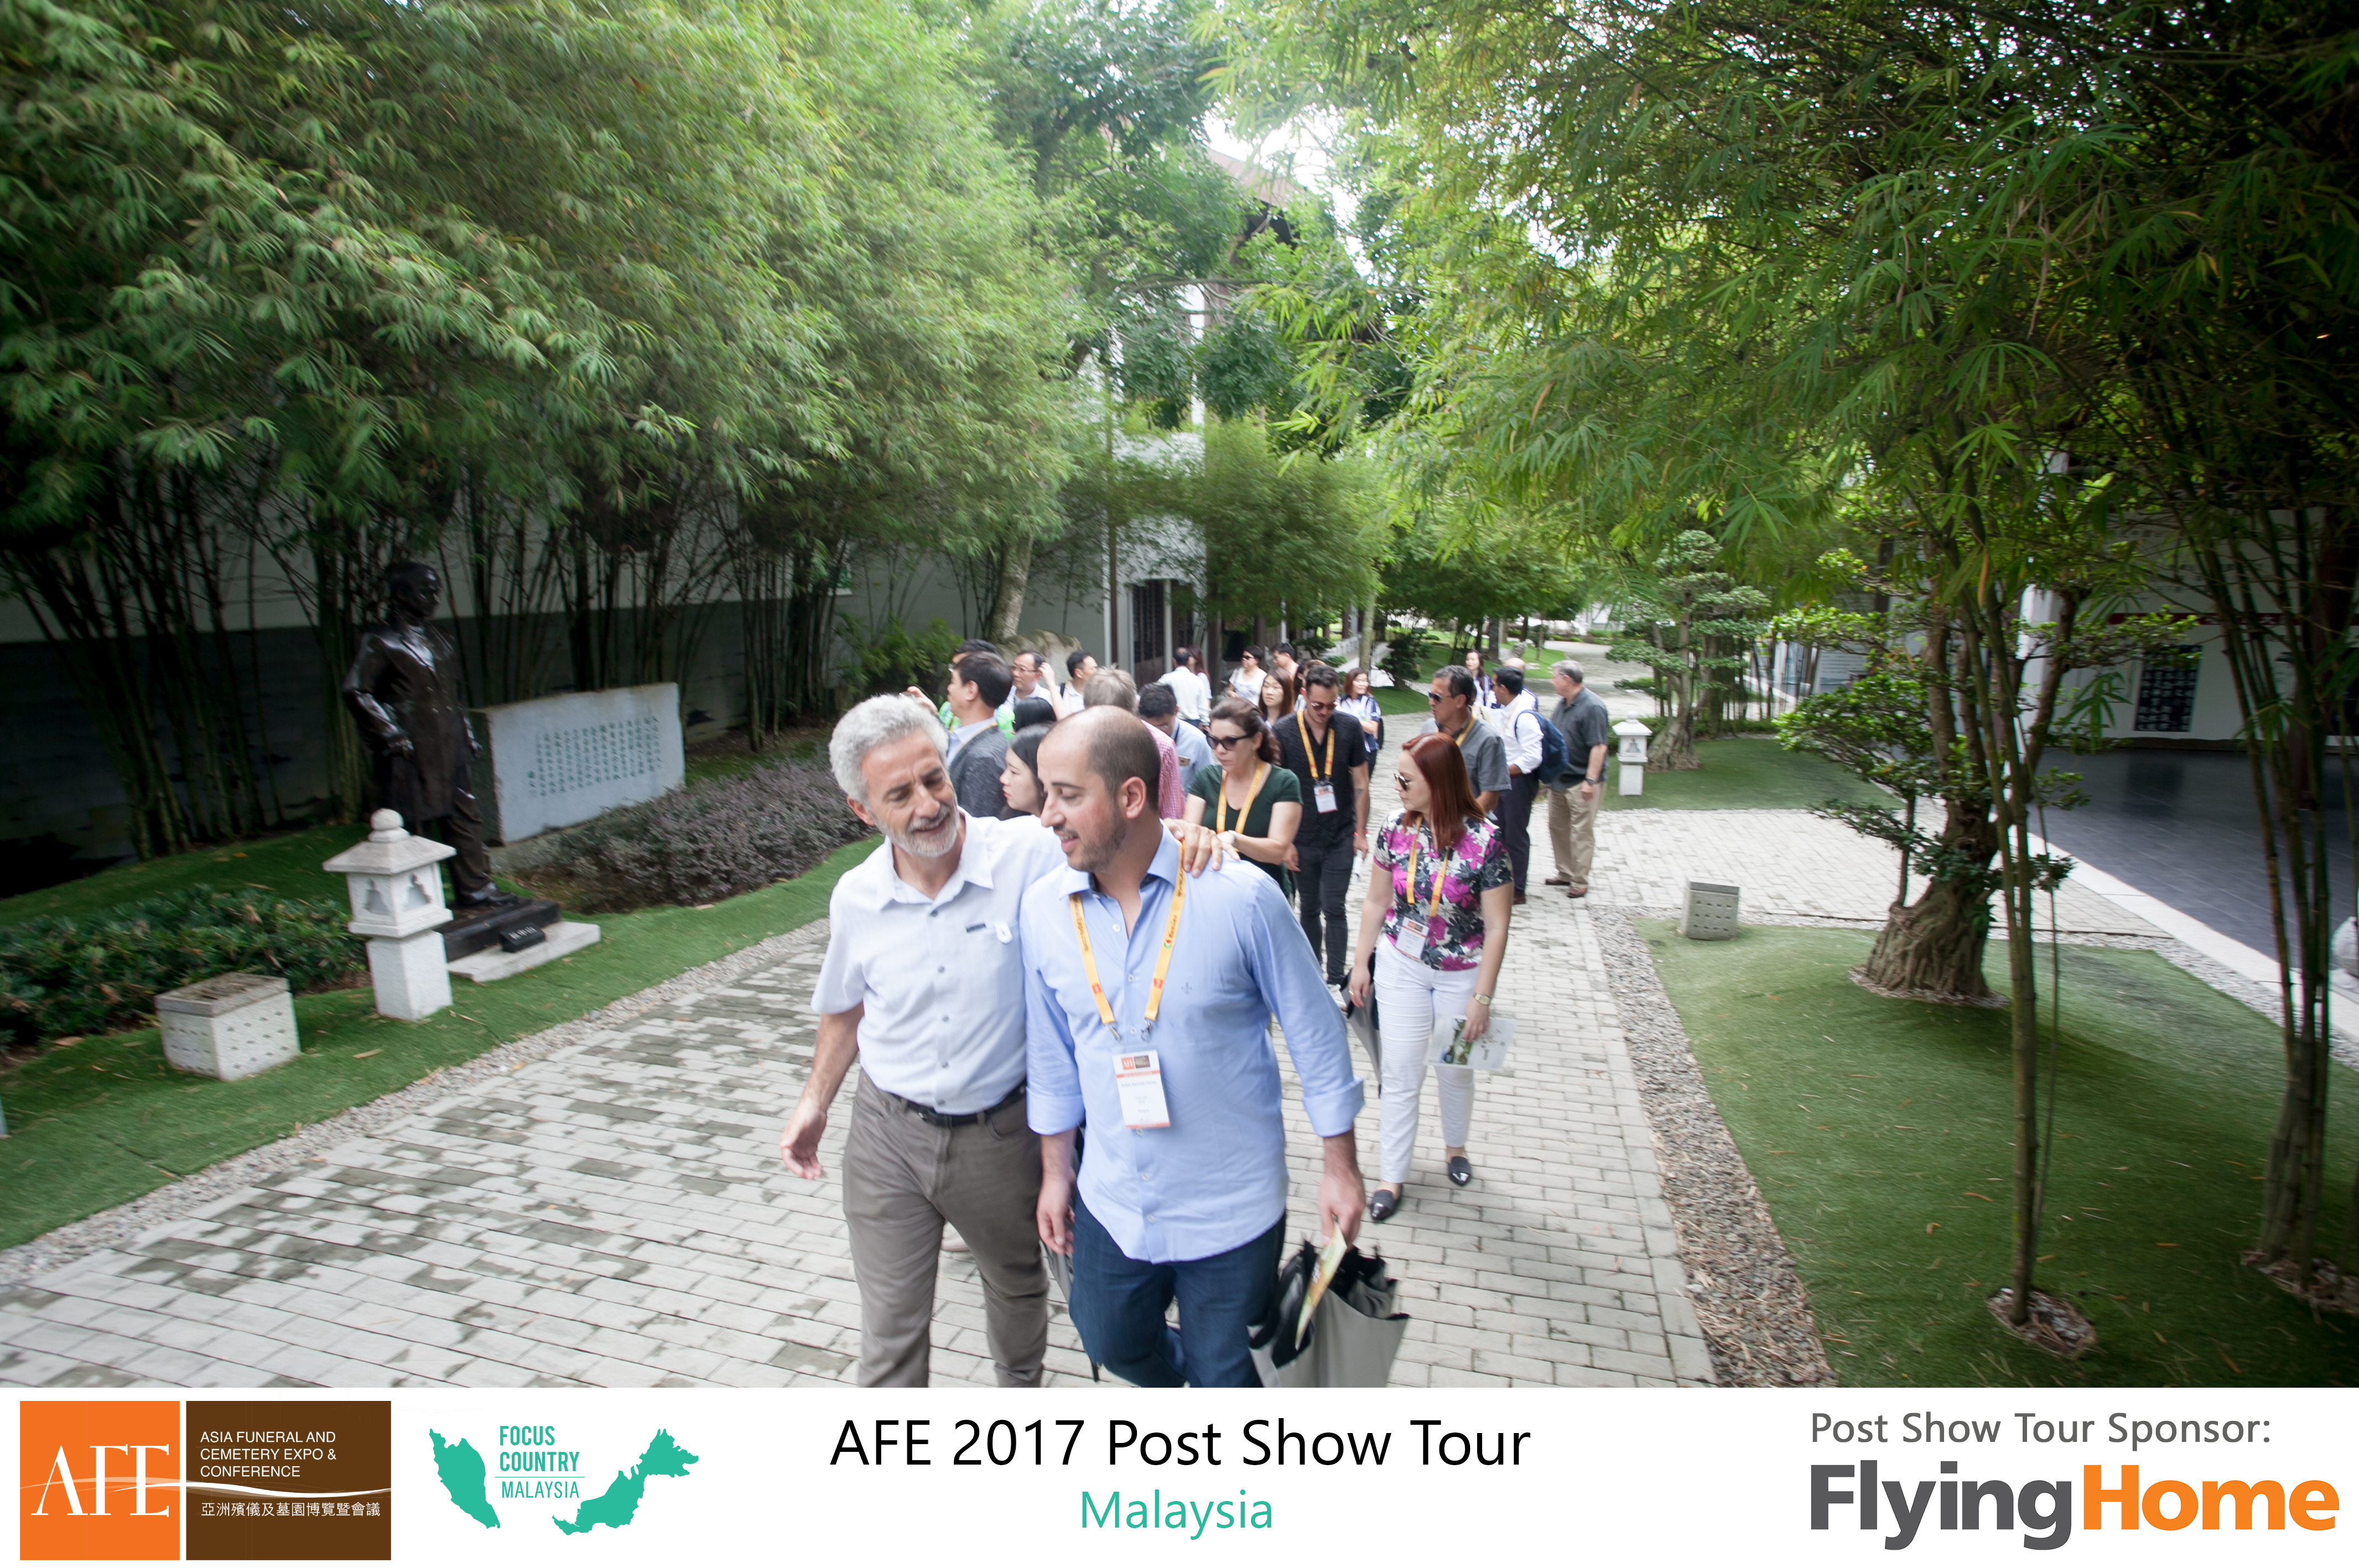 AFE Post Show Tour 2017 Day 2 - 59